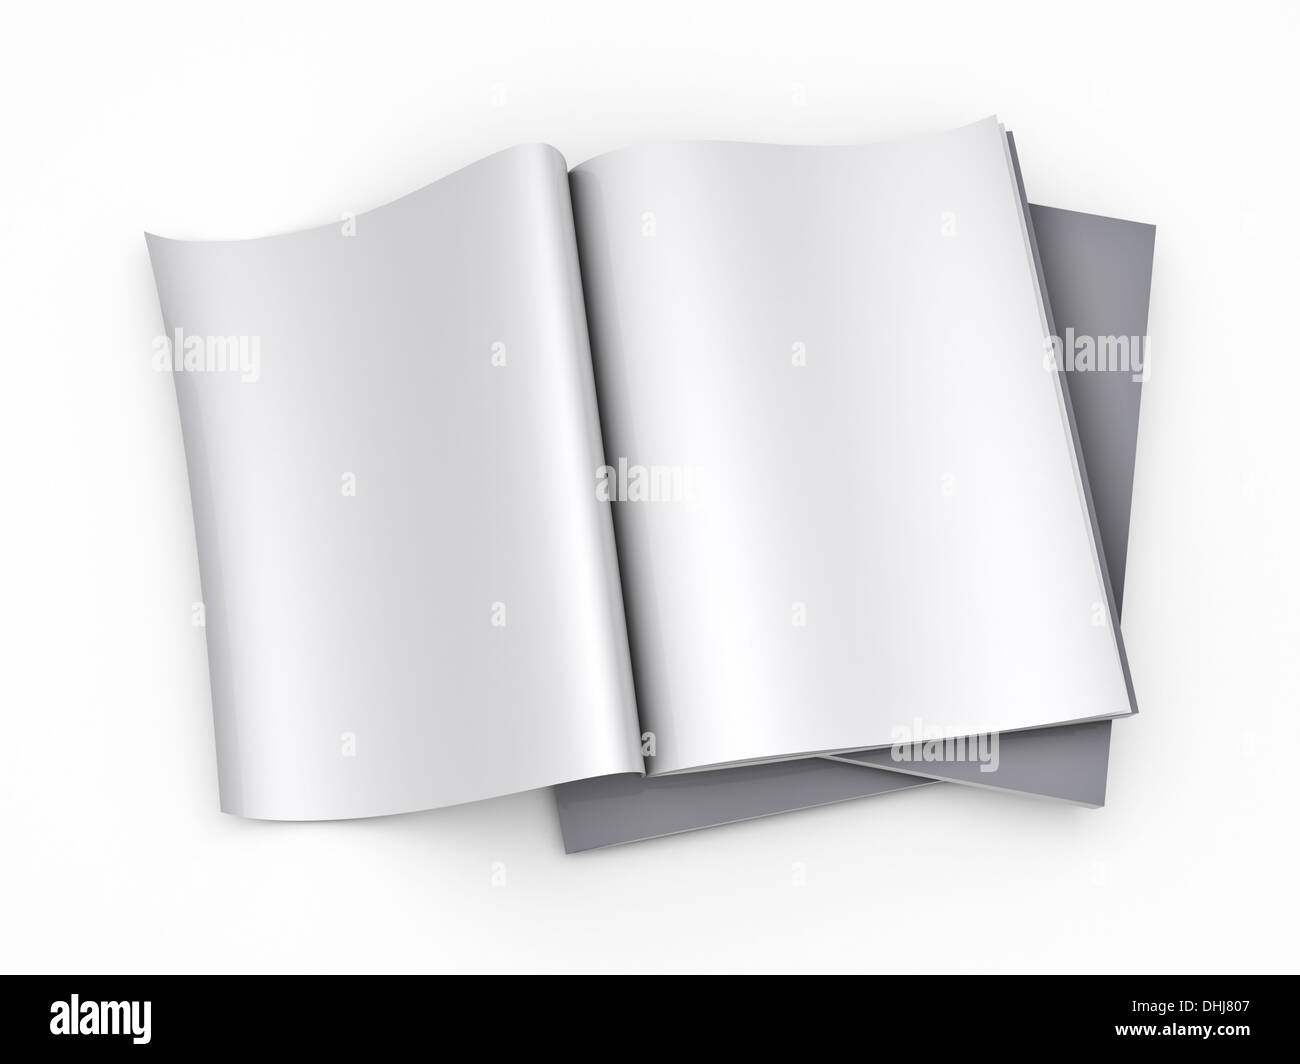 Exercise Book Page Stockfotos & Exercise Book Page Bilder - Alamy